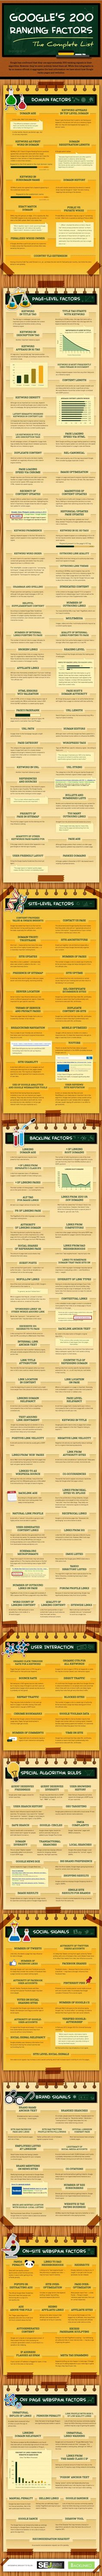 """""""If you're an SEO expert, bad news; your secrets are online. Thanks to this infographic, nobody needs to ask about SEO anymore!"""""""